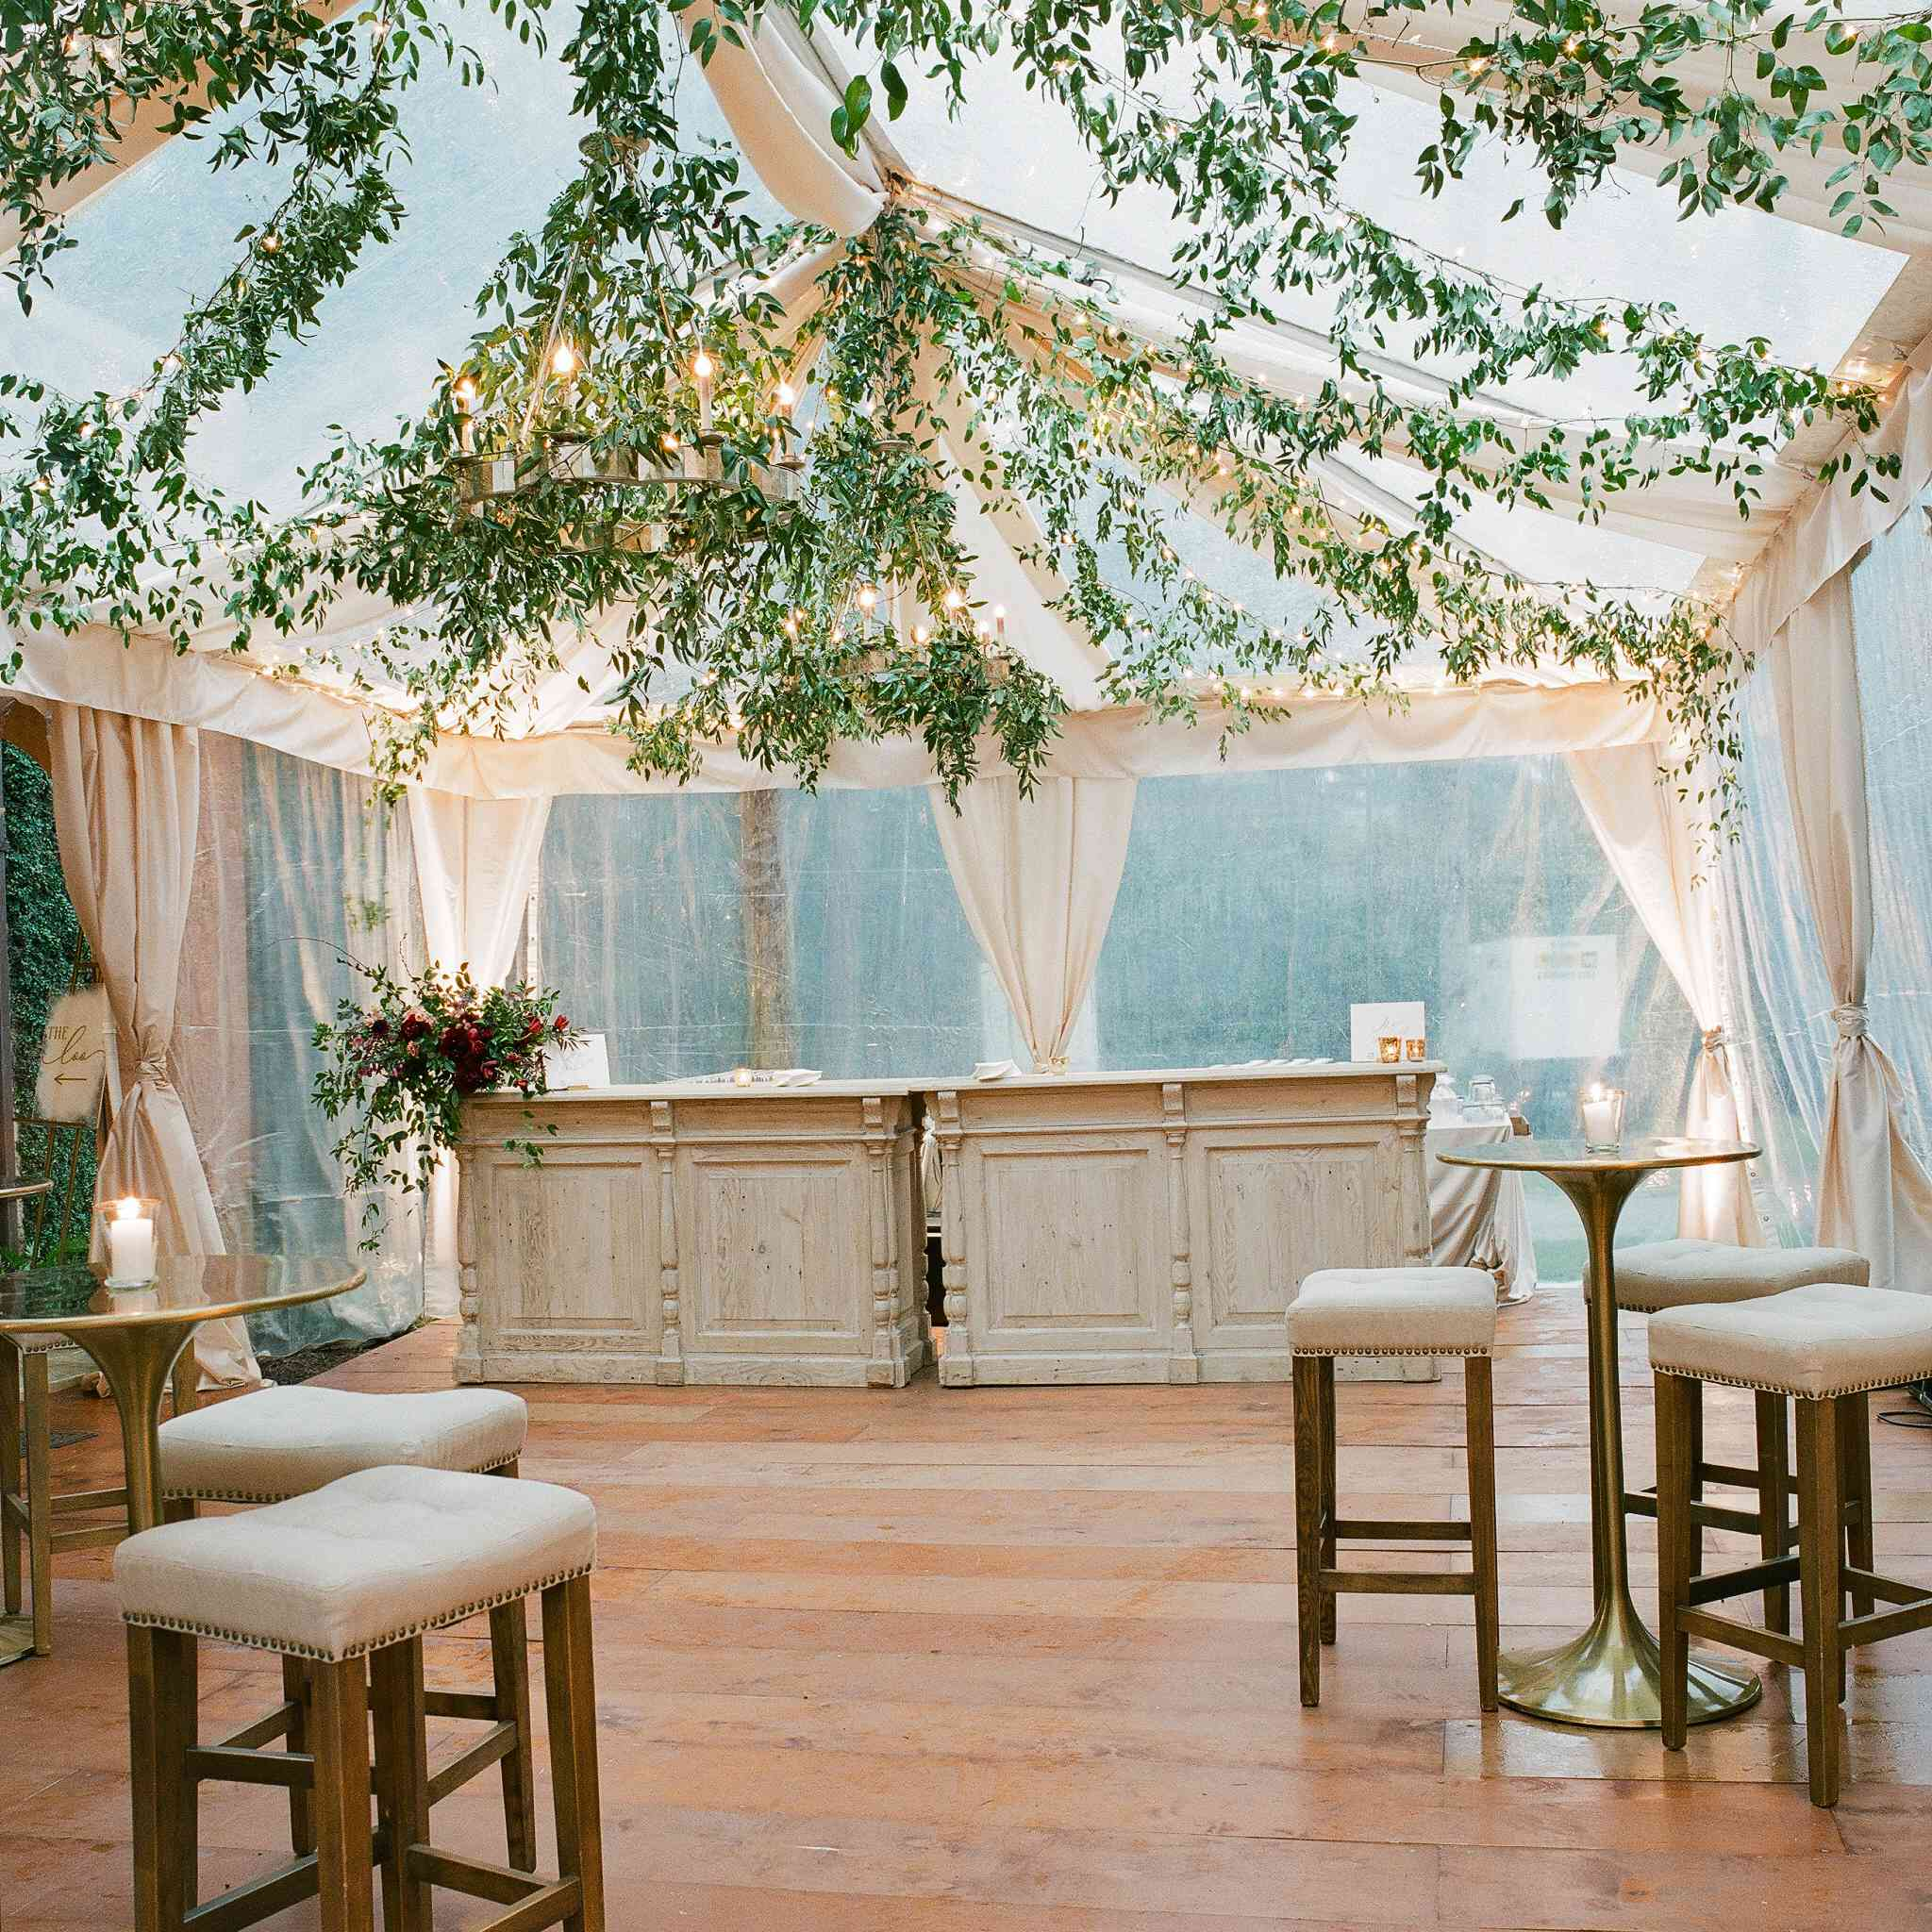 Tent interior detail with greenery and warm lighting